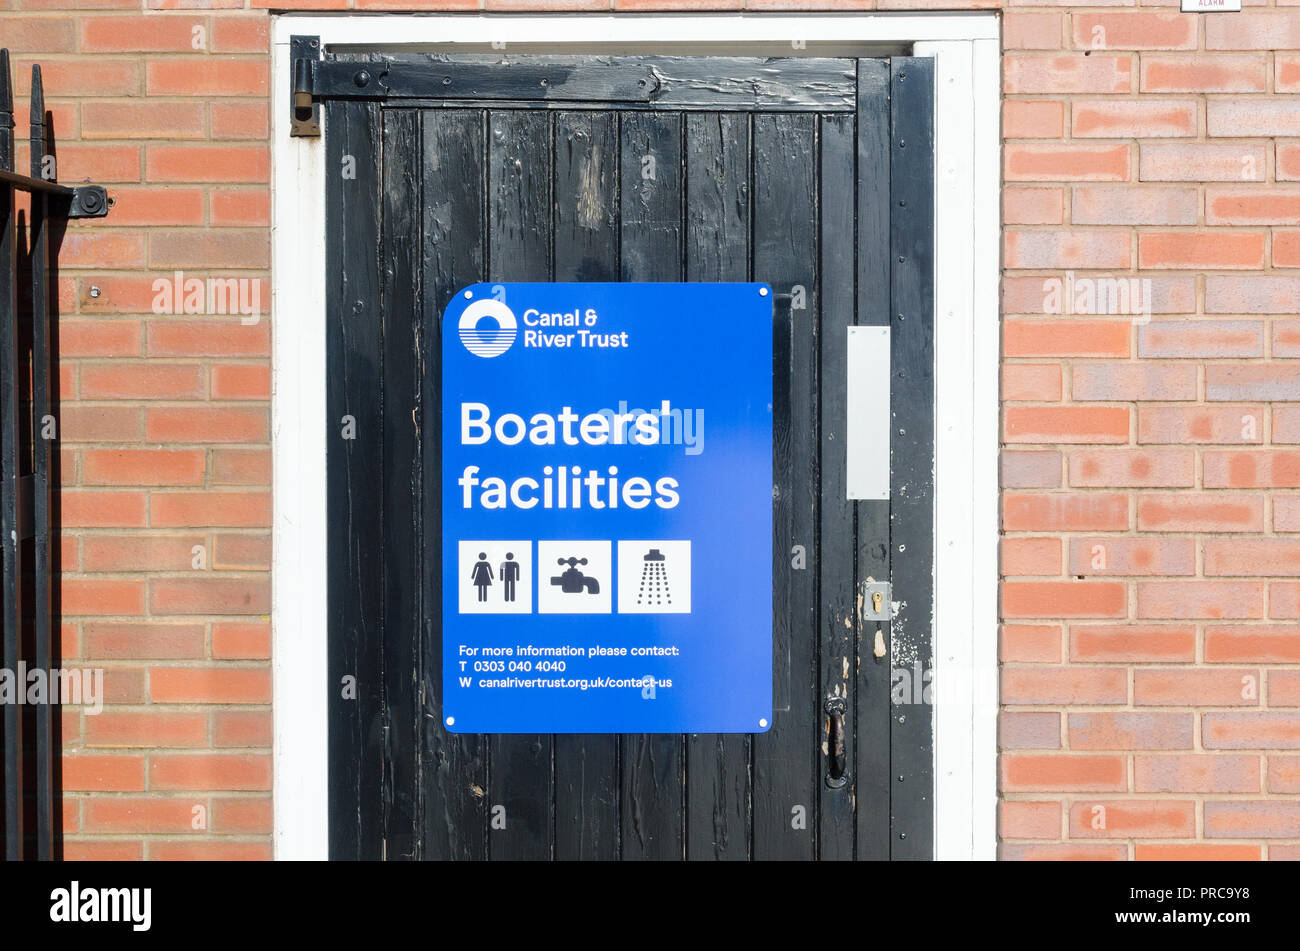 Blue Canal and River Trust sign for boaters' facilities on the canal towpath in Birmingham city centre - Stock Image